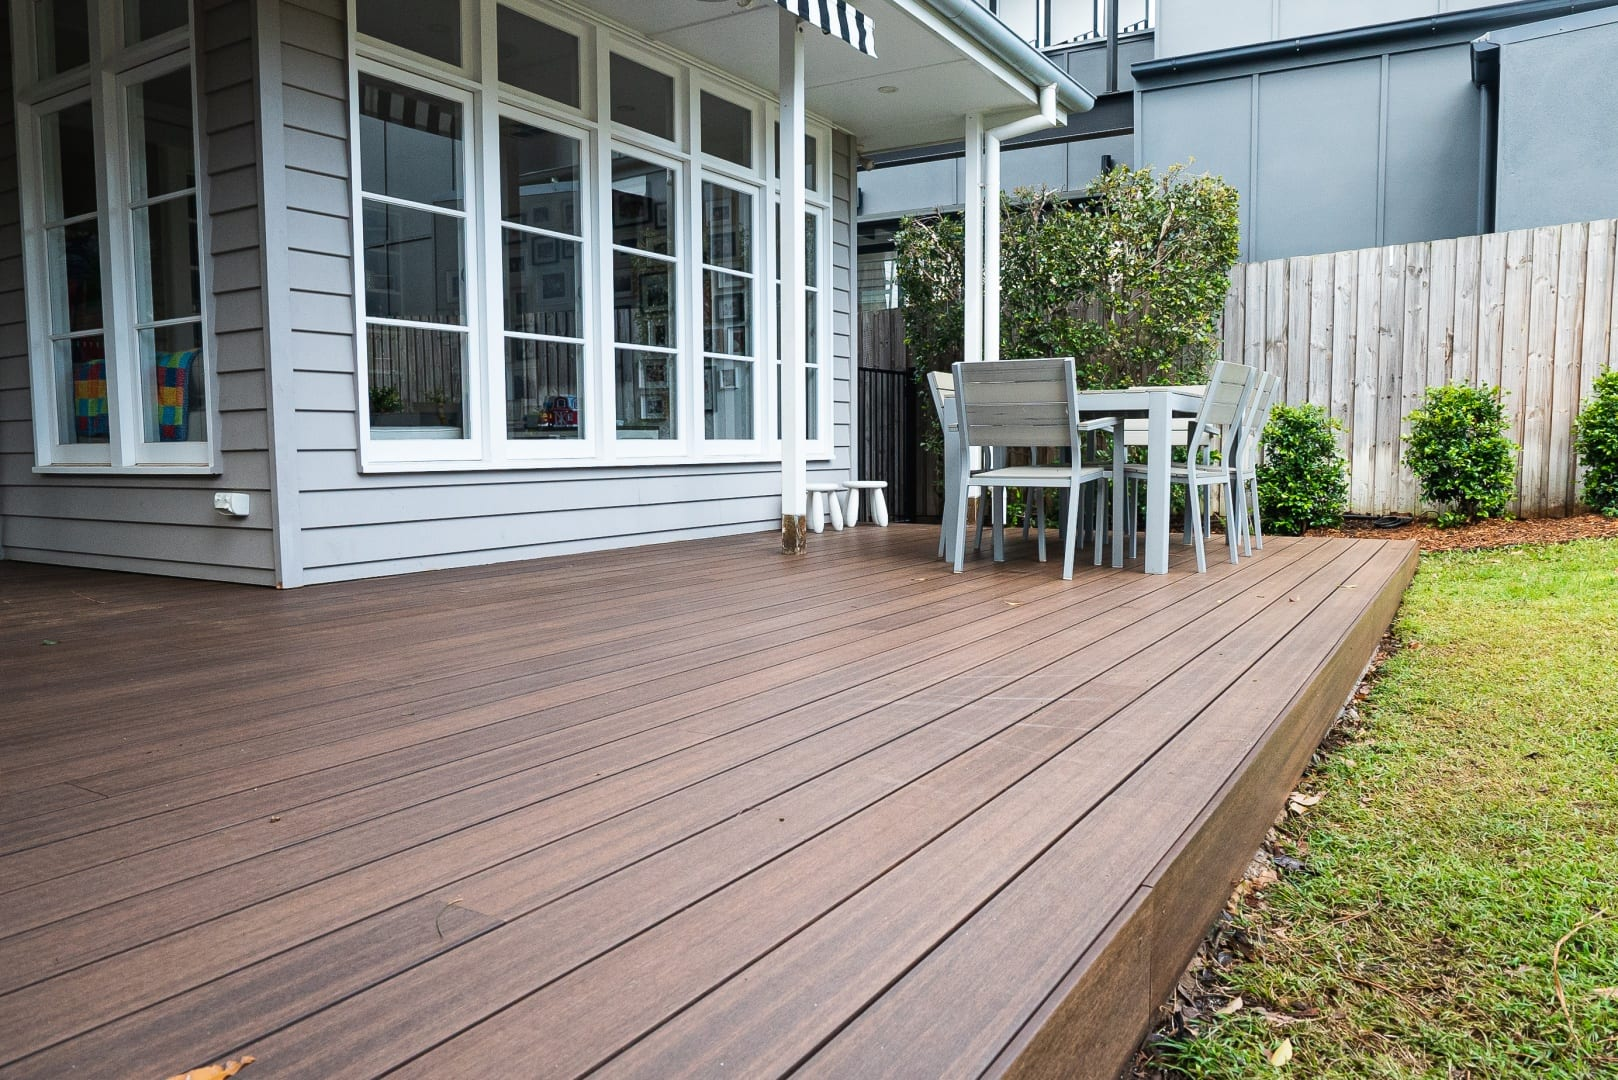 Stylish custom decks in Ascot